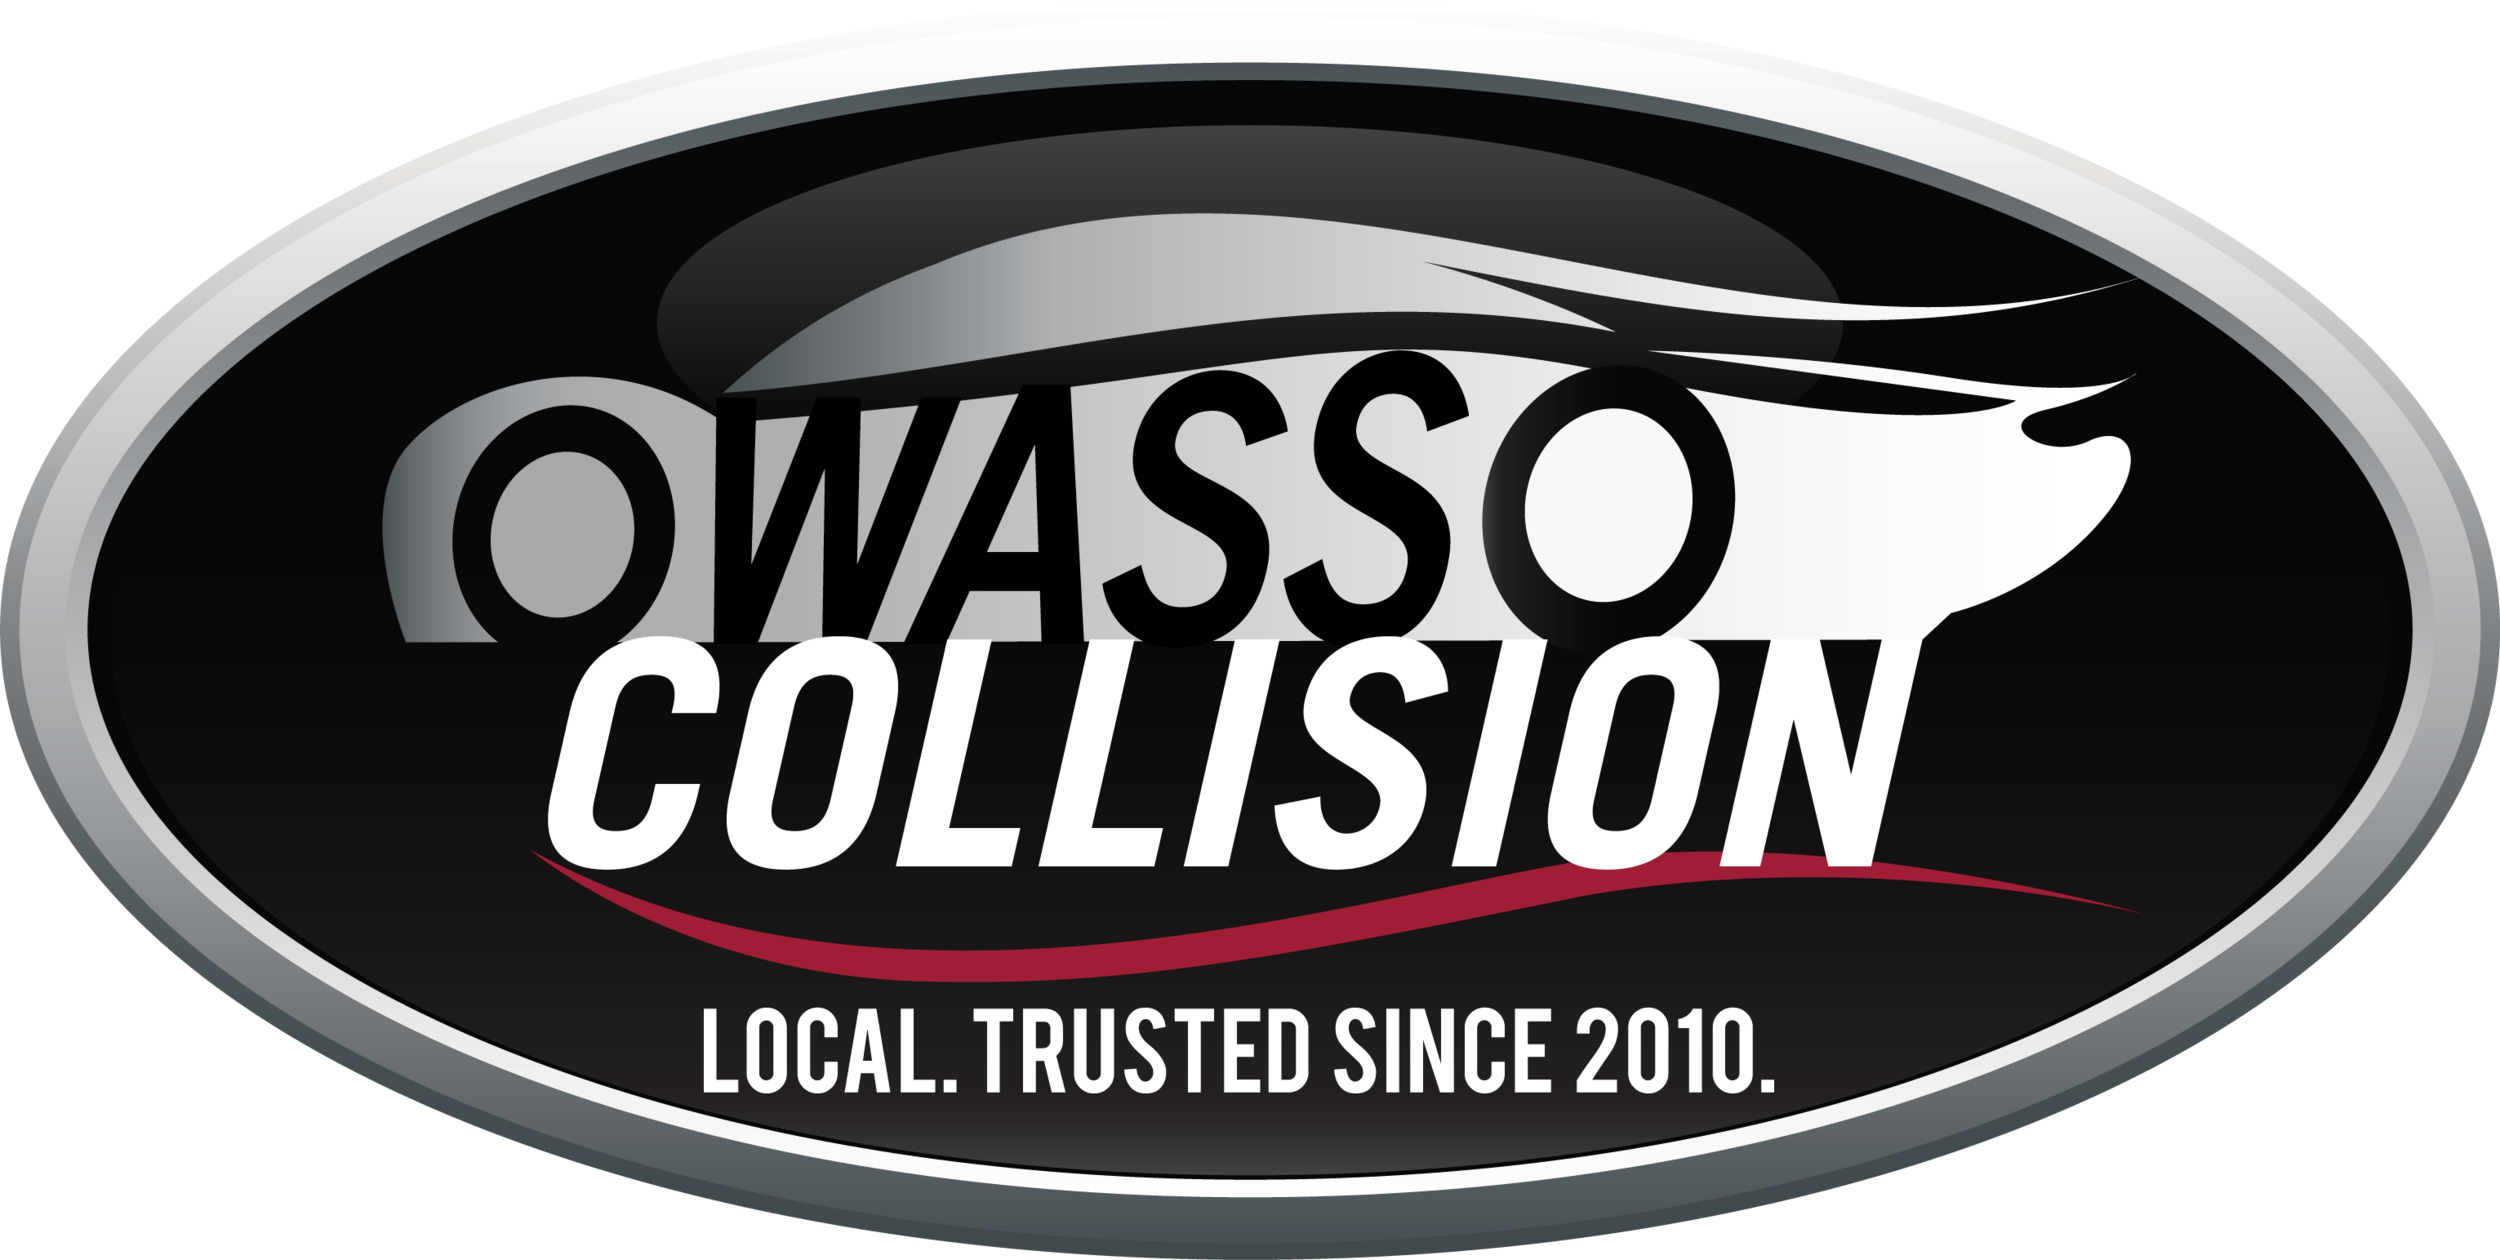 OWASSO COLLISION 4_color 2019 2.png